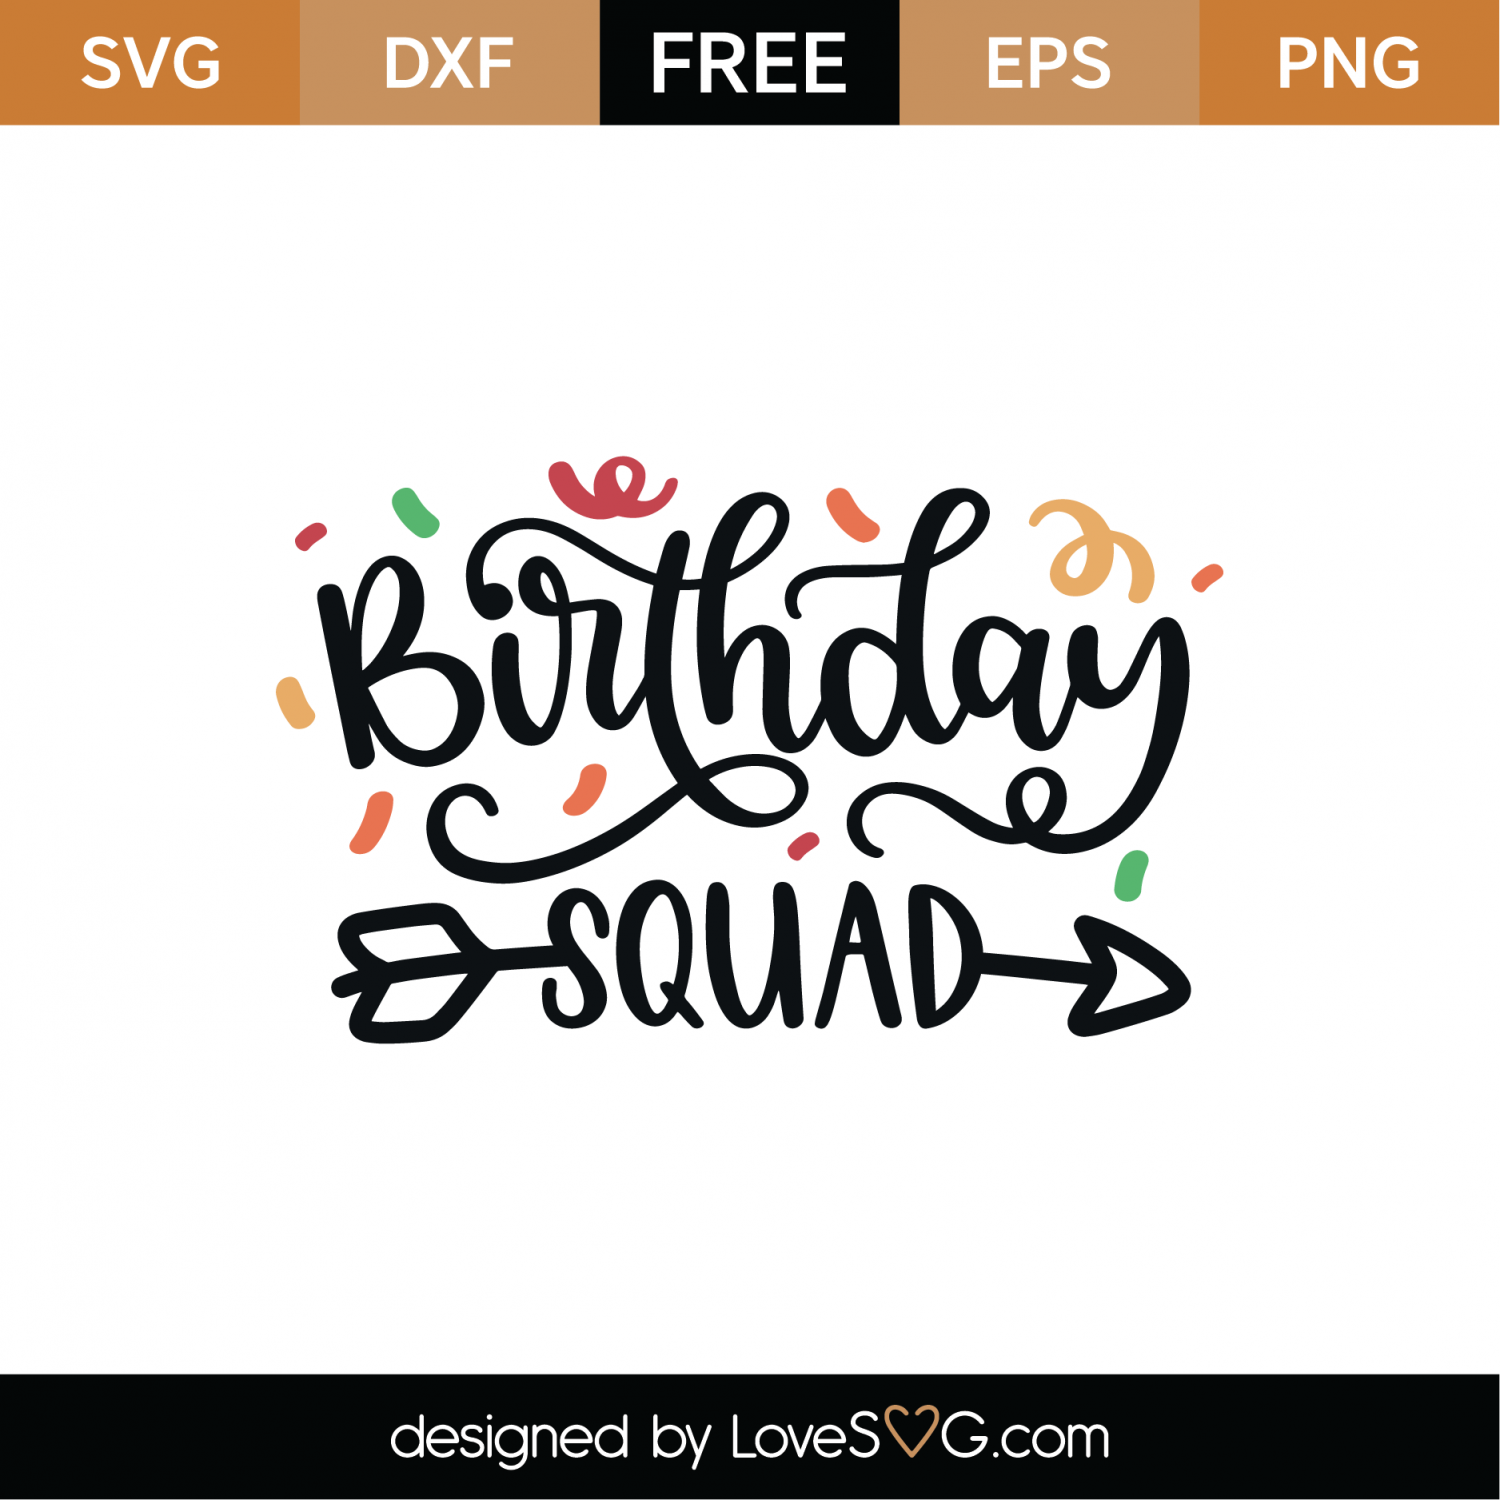 birthday squad svg #1081, Download drawings